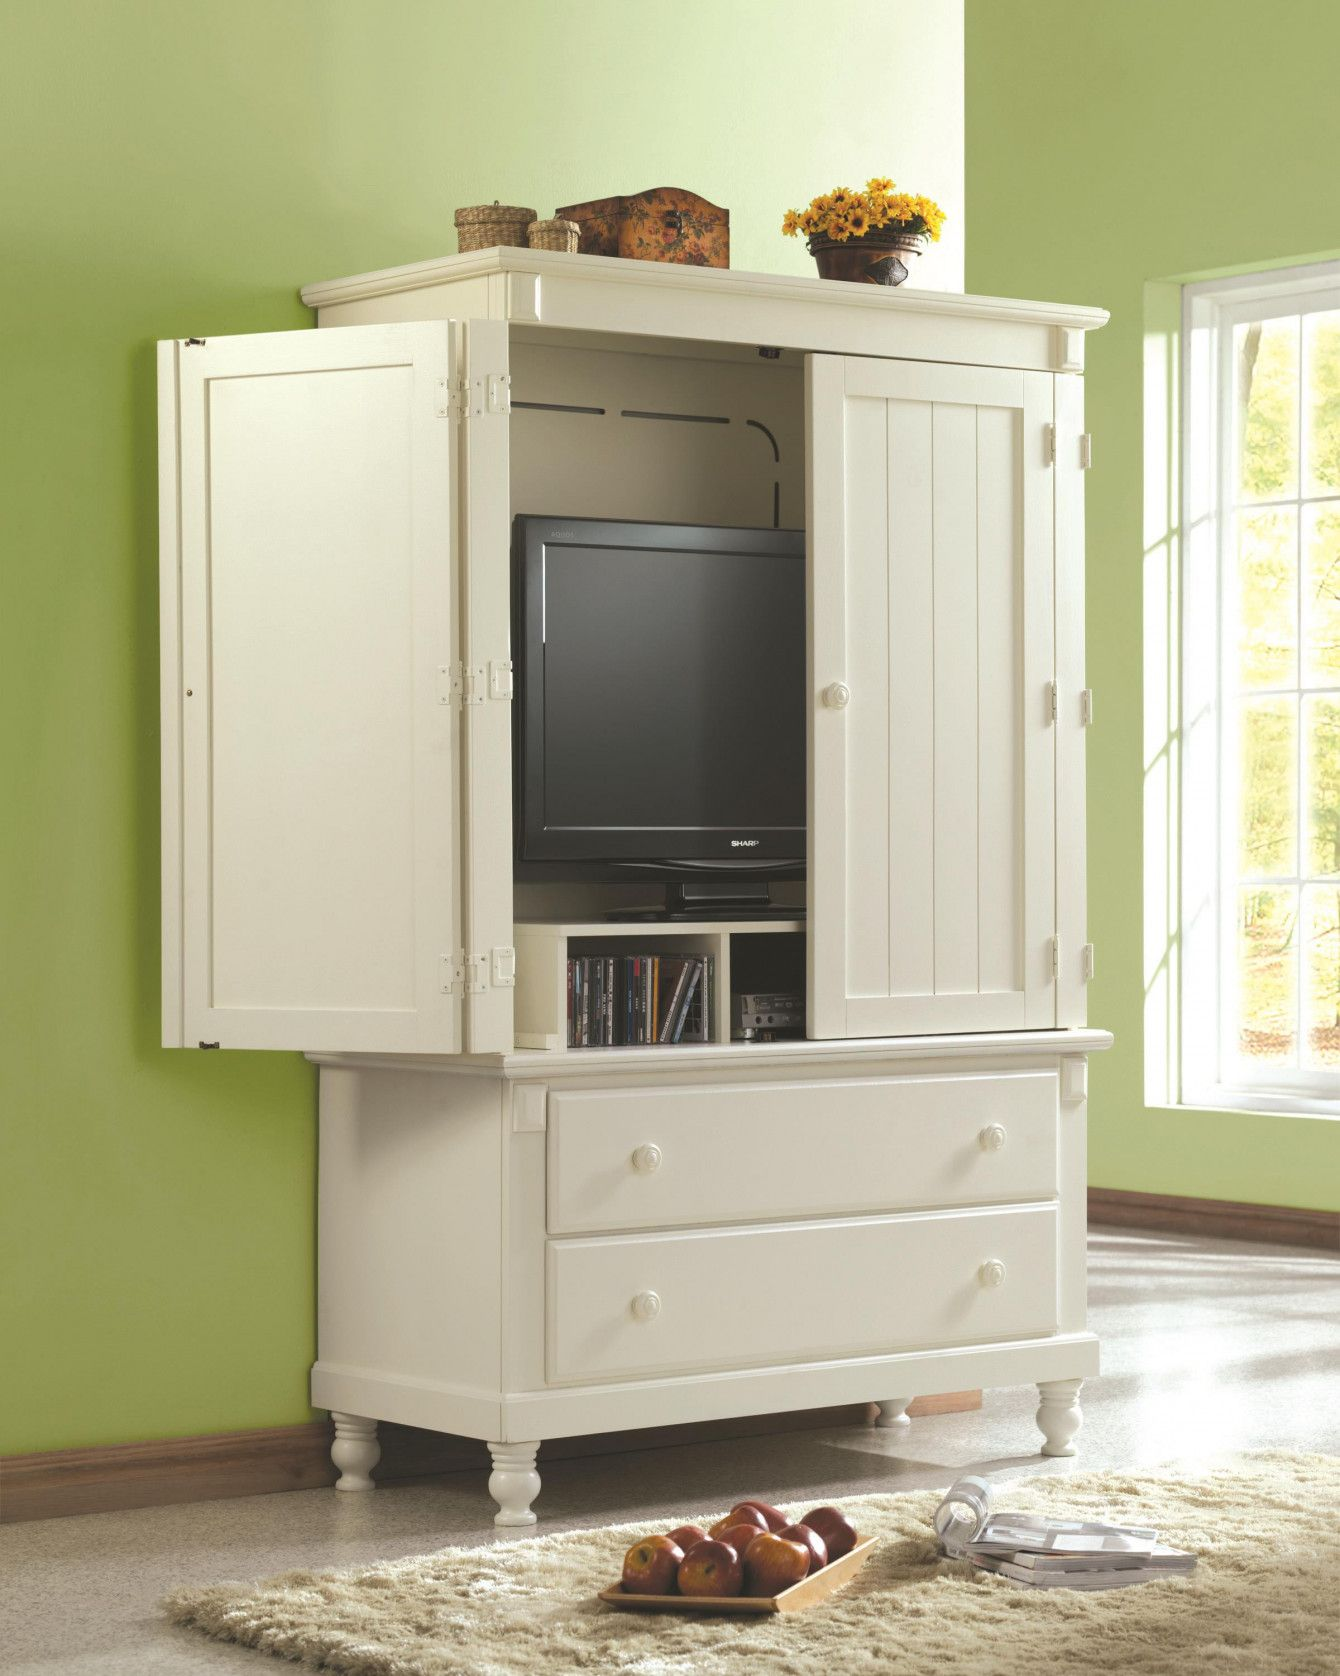 Exceptional 55+ Corner Armoire Tv Cabinet   Kitchen Decor Theme Ideas Check More At  Http: